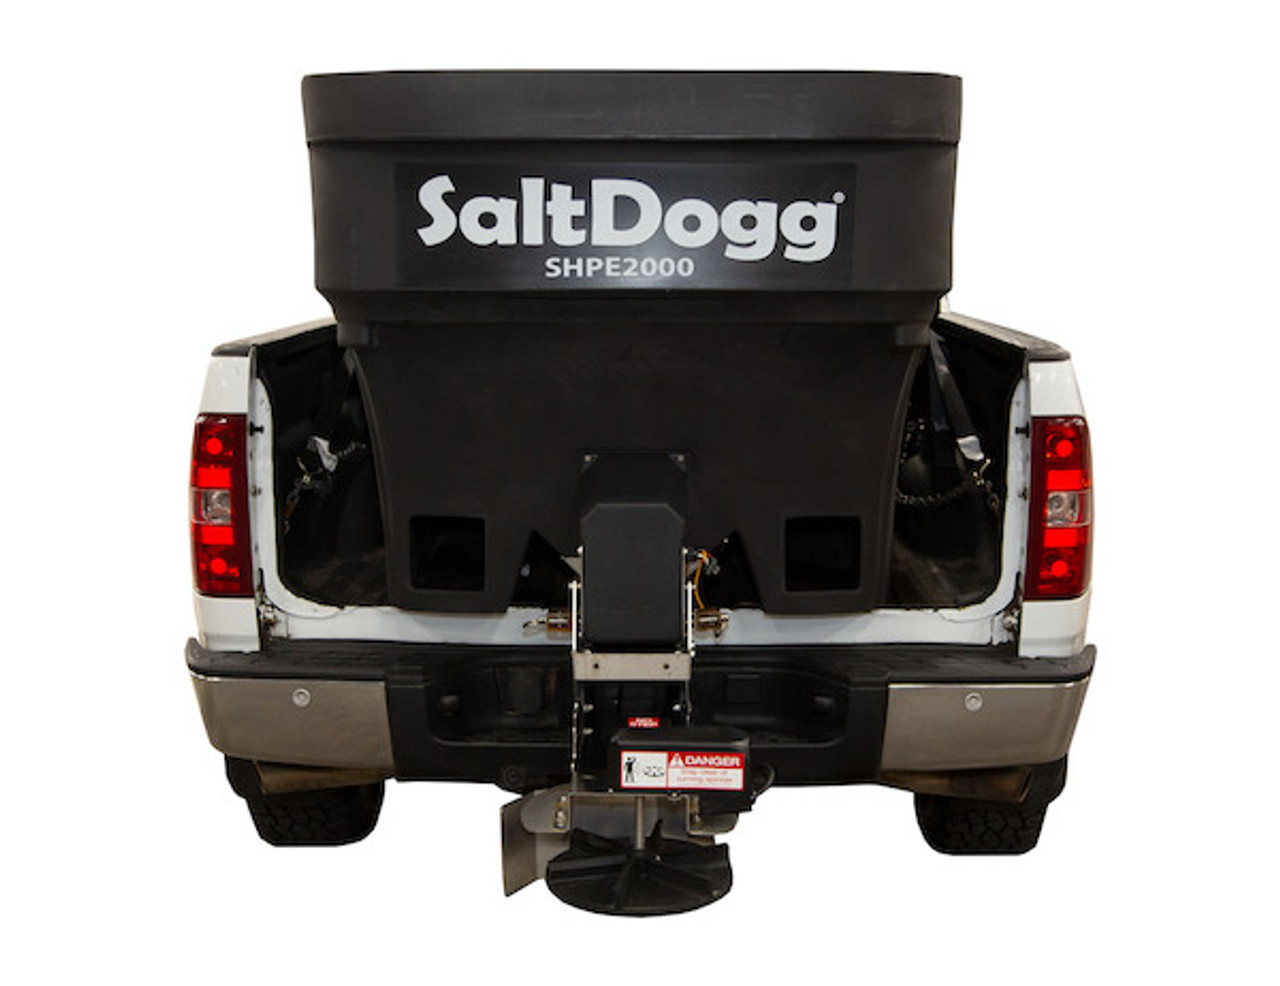 SHPE2000 BUYERS SALTDOGG ELECTRIC POLY HOPPER SPREADER